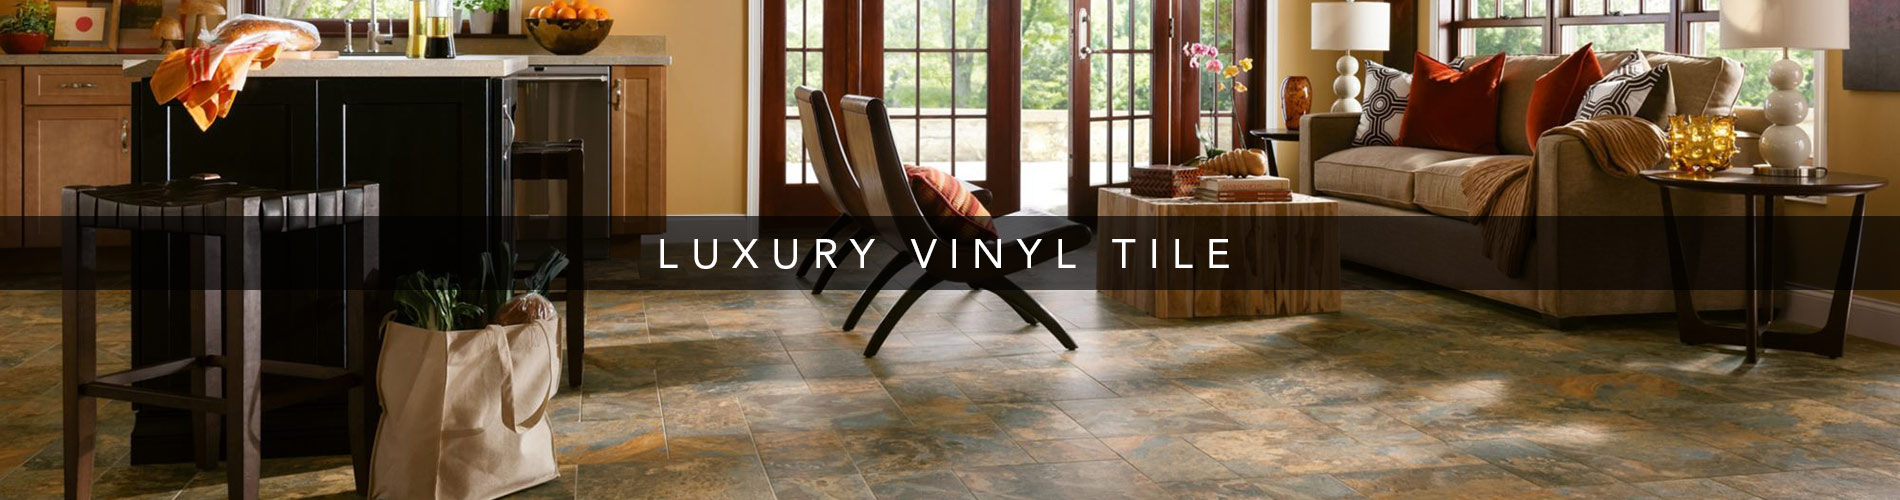 Flooring on sale napas largest selection of floor covering with flooring on sale napas largest selection of floor covering with professional installation napa ca abbey carpets unlimited design center dailygadgetfo Gallery